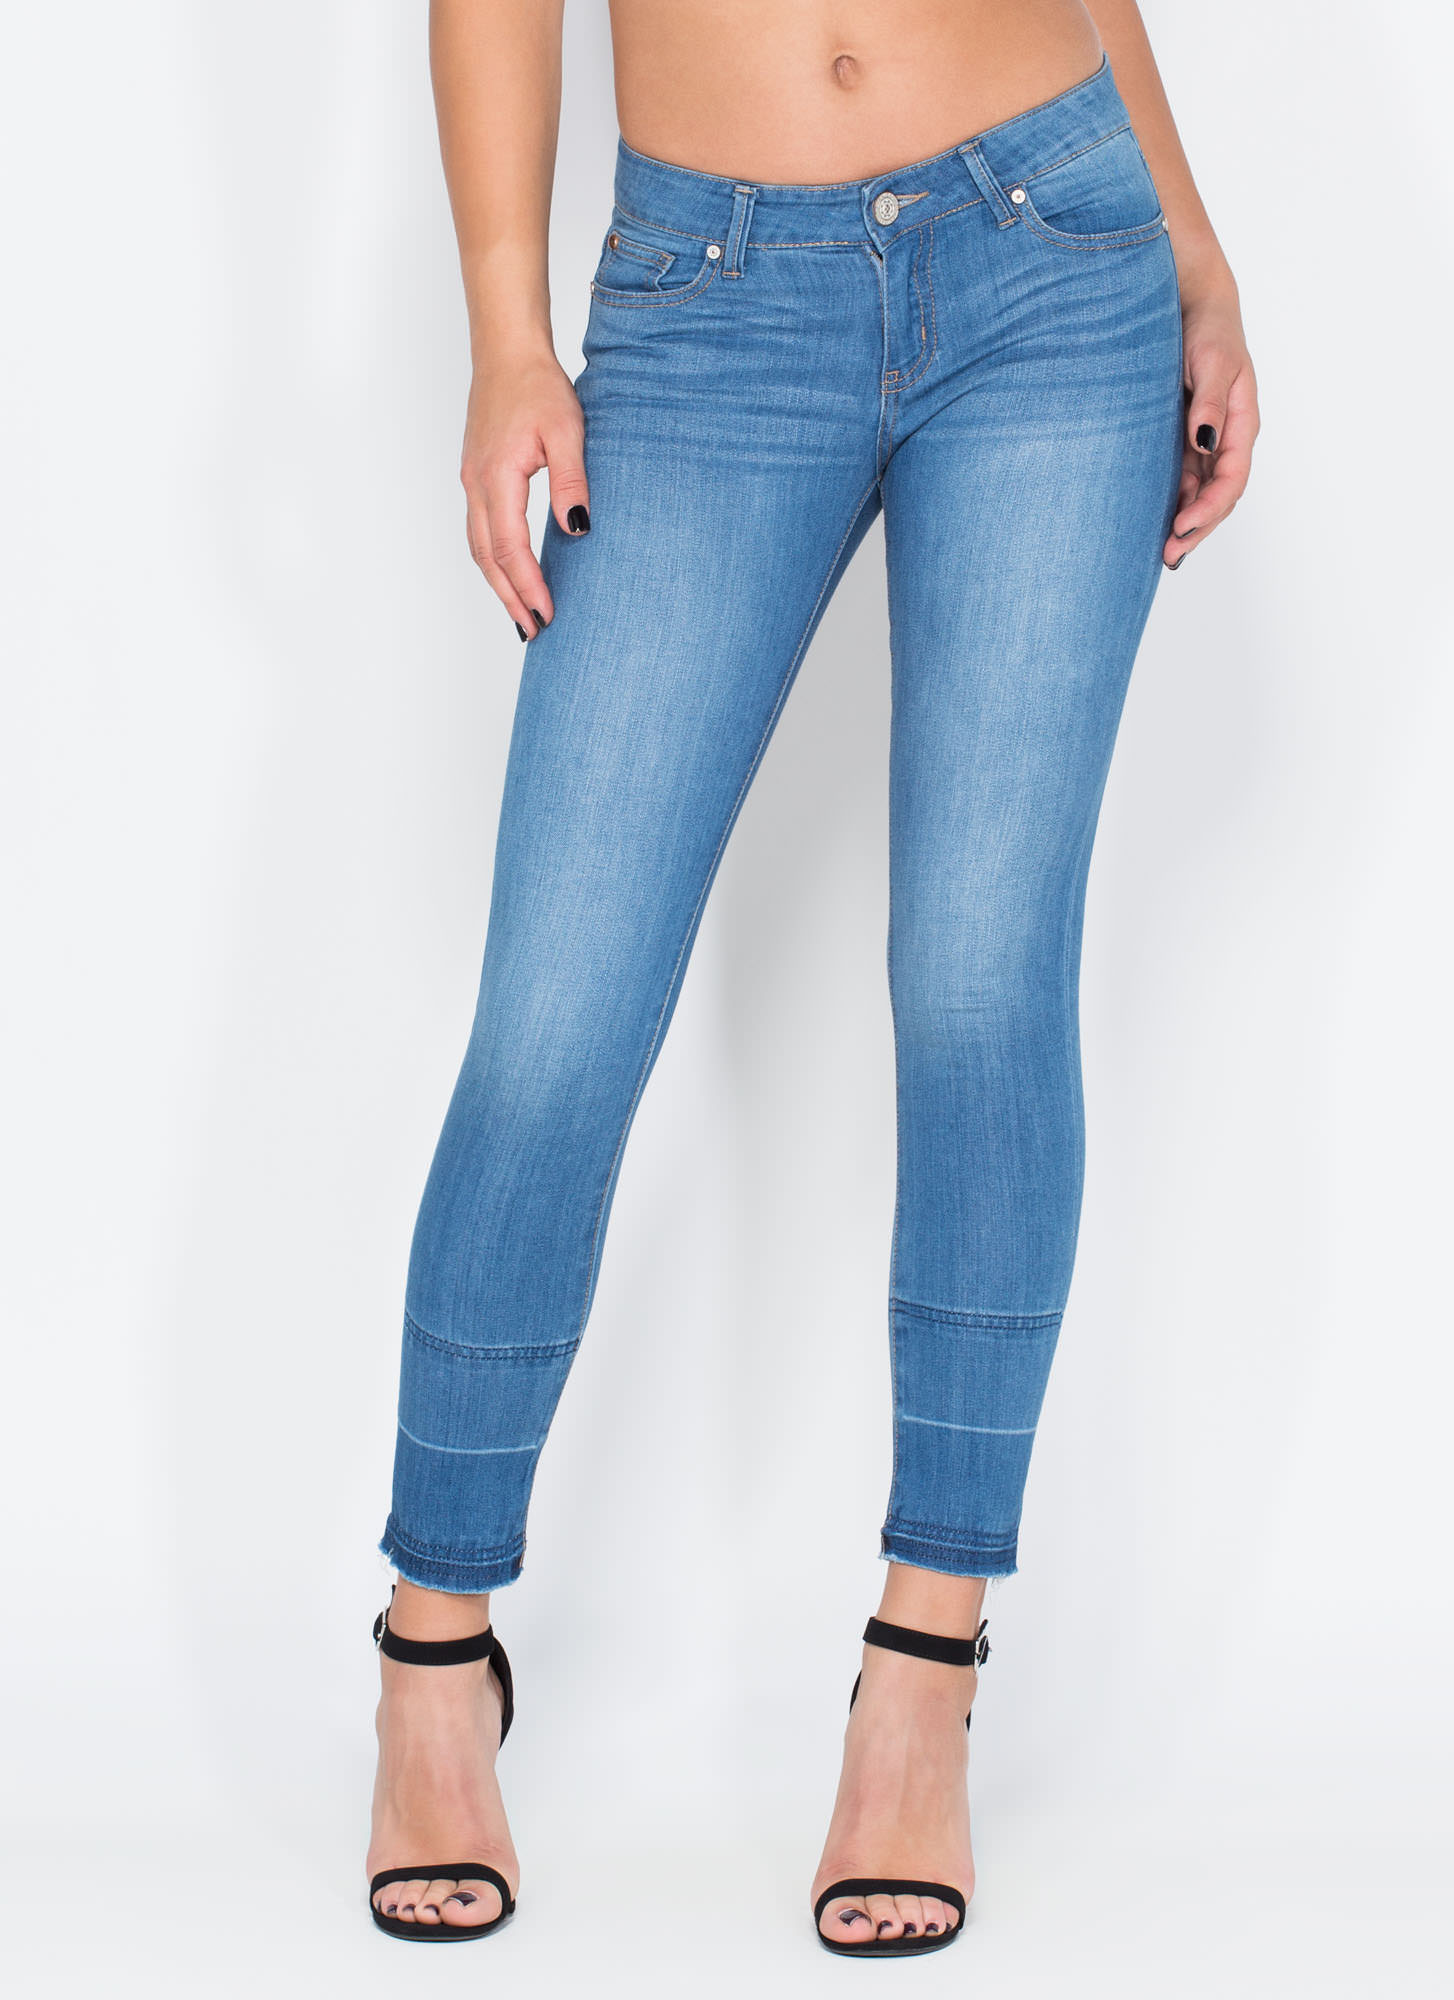 Dare To Dream Skinny Jeans